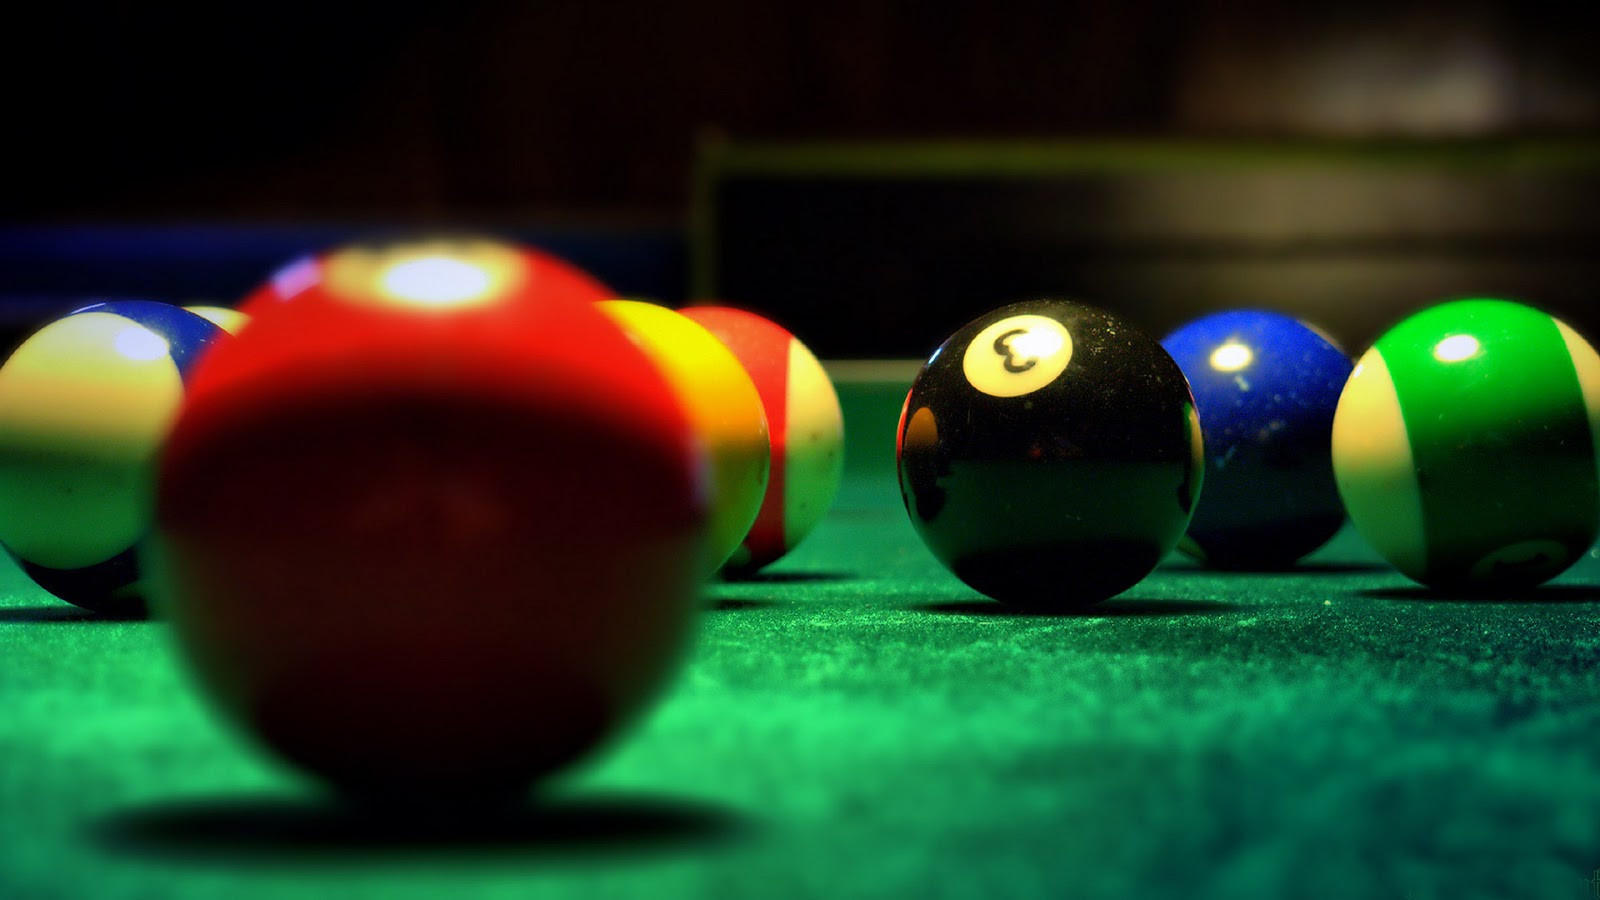 Ball Pool Wallpaper Image Gallery HCPR